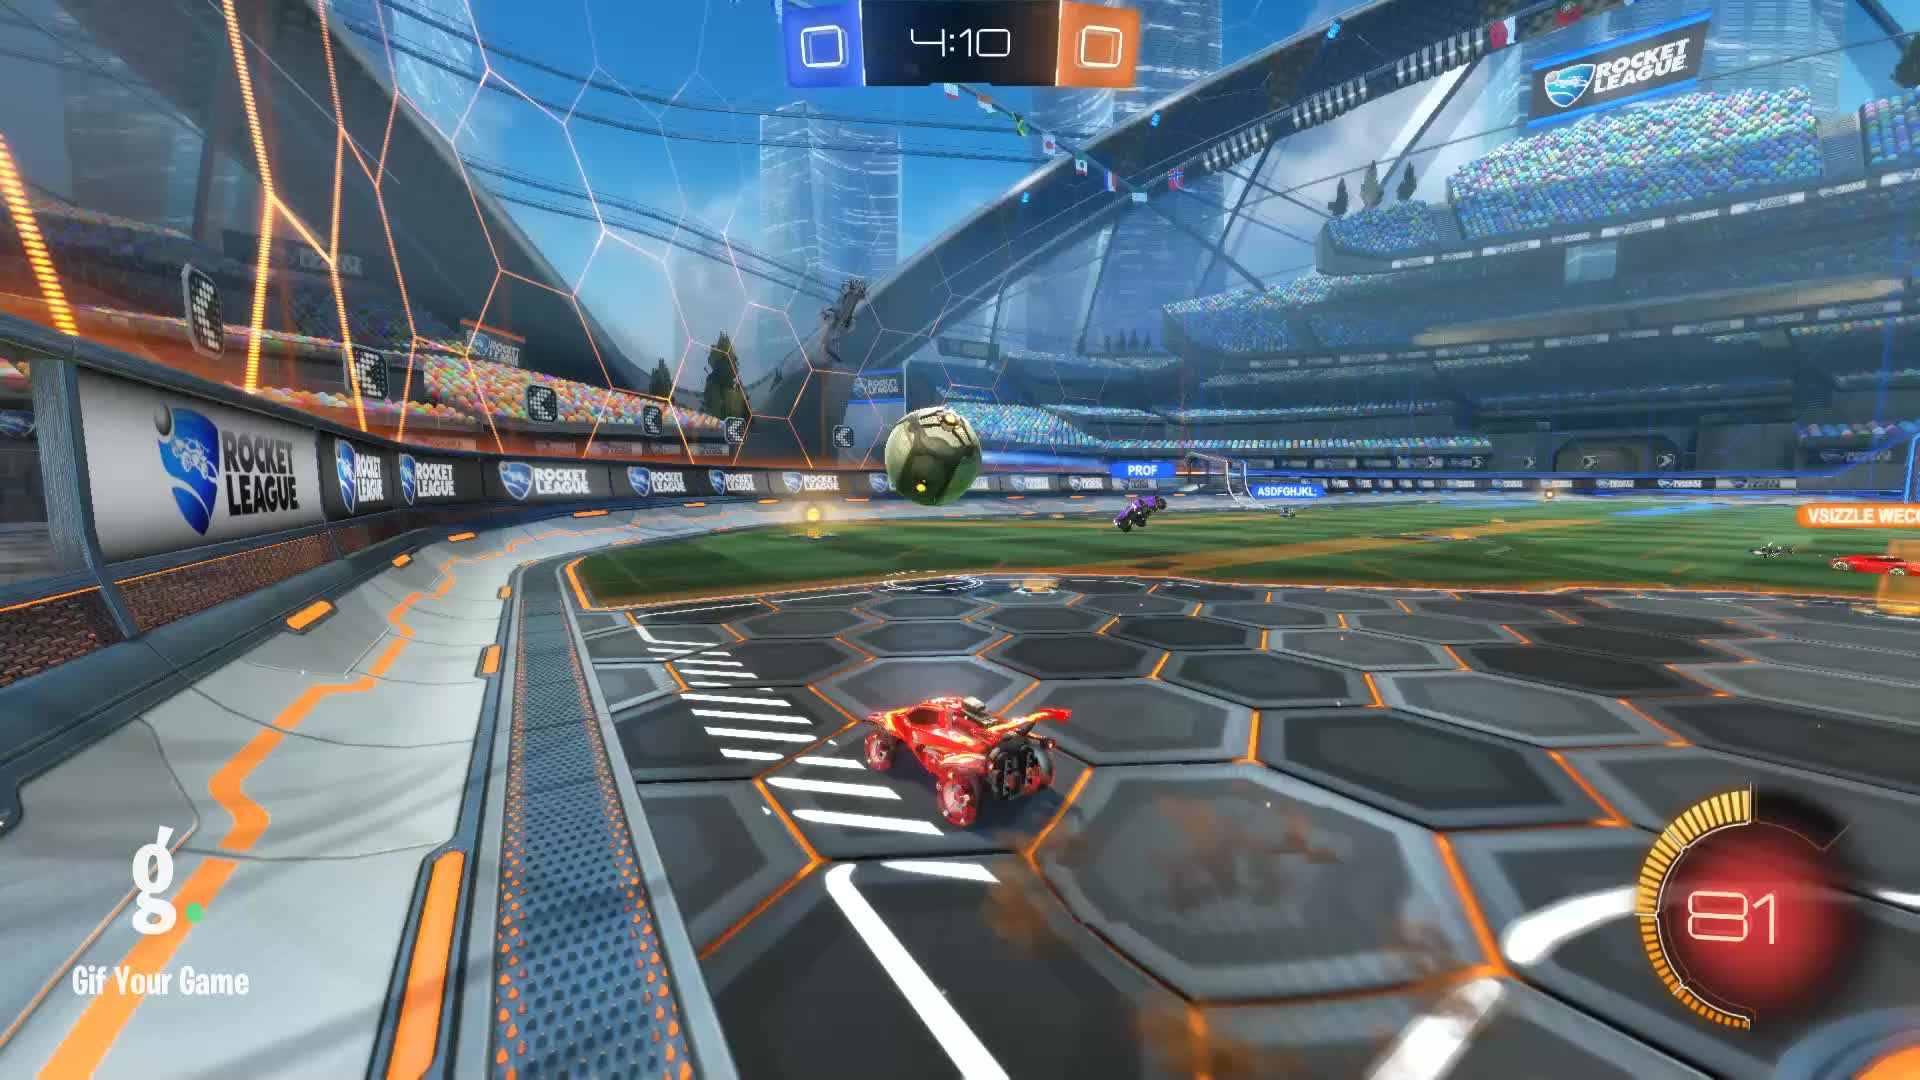 Gif Your Game, GifYourGame, Goal, Rocket League, RocketLeague, calltopower1, Goal 1: calltopower1 GIFs